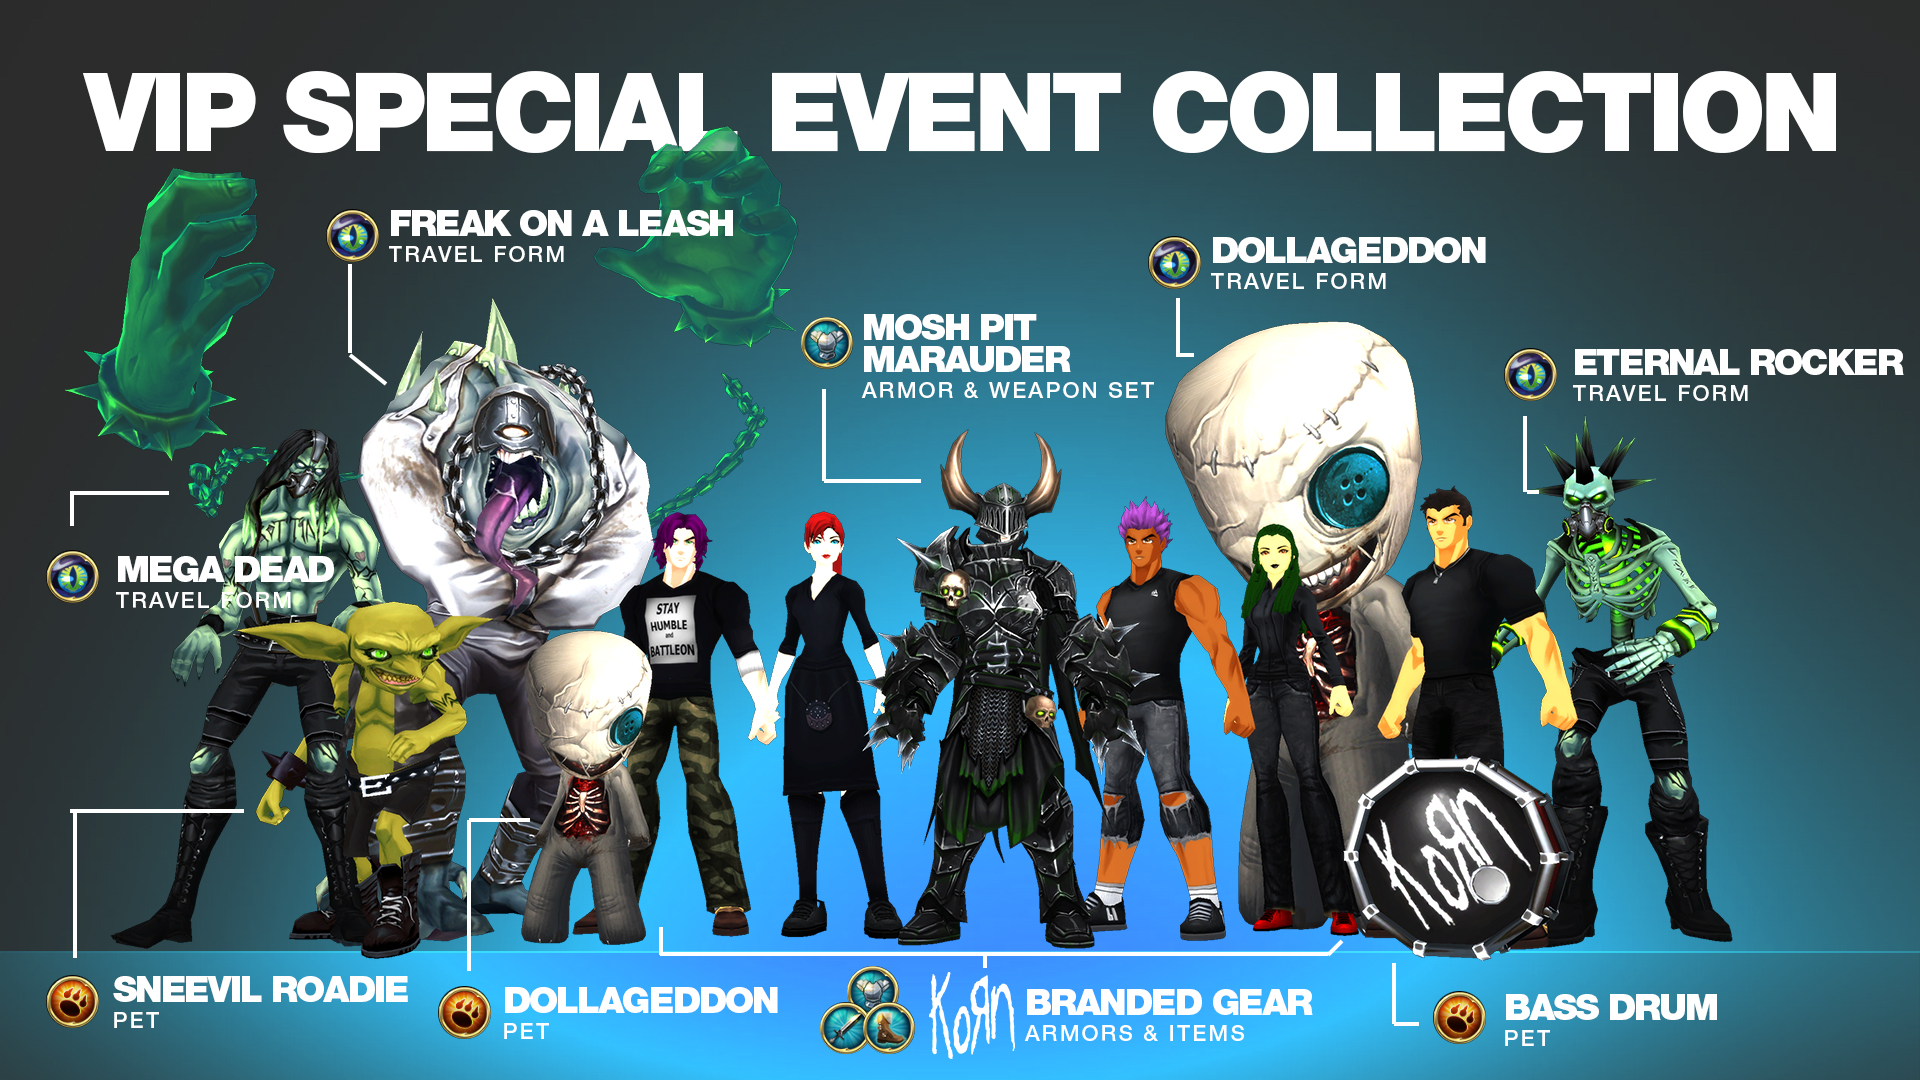 VIP Special Event Collection